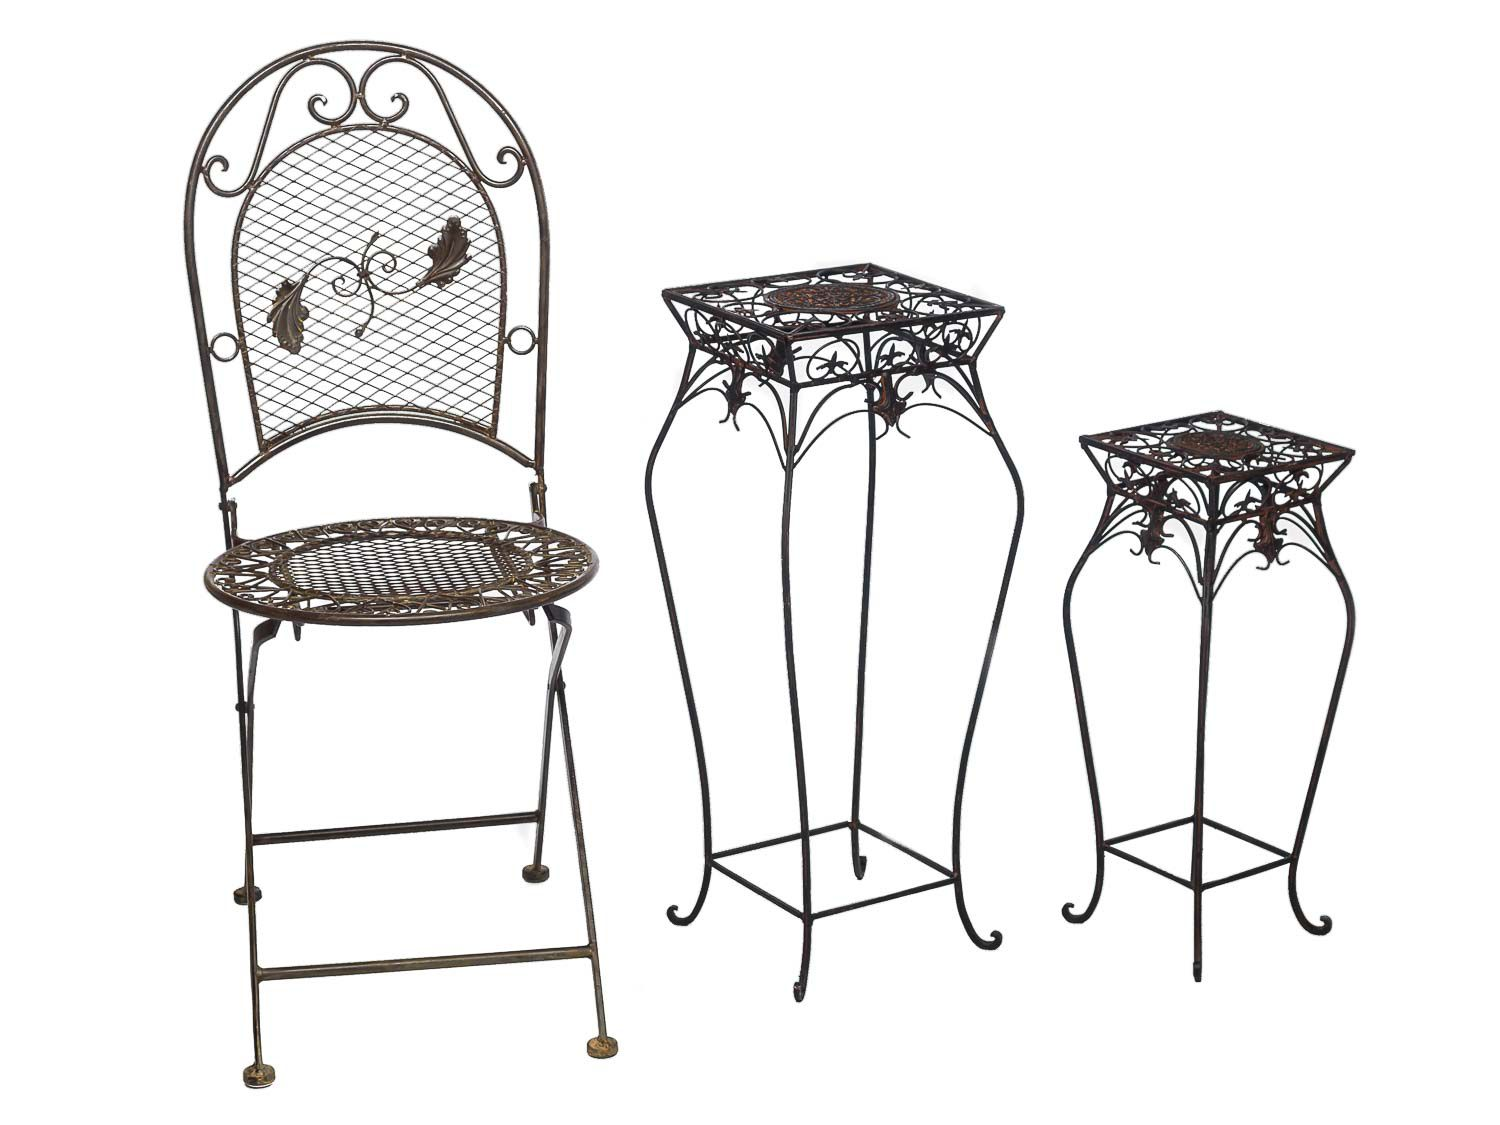 2x meuble tableau floral pour pot de fleurs plantes style antique ebay. Black Bedroom Furniture Sets. Home Design Ideas